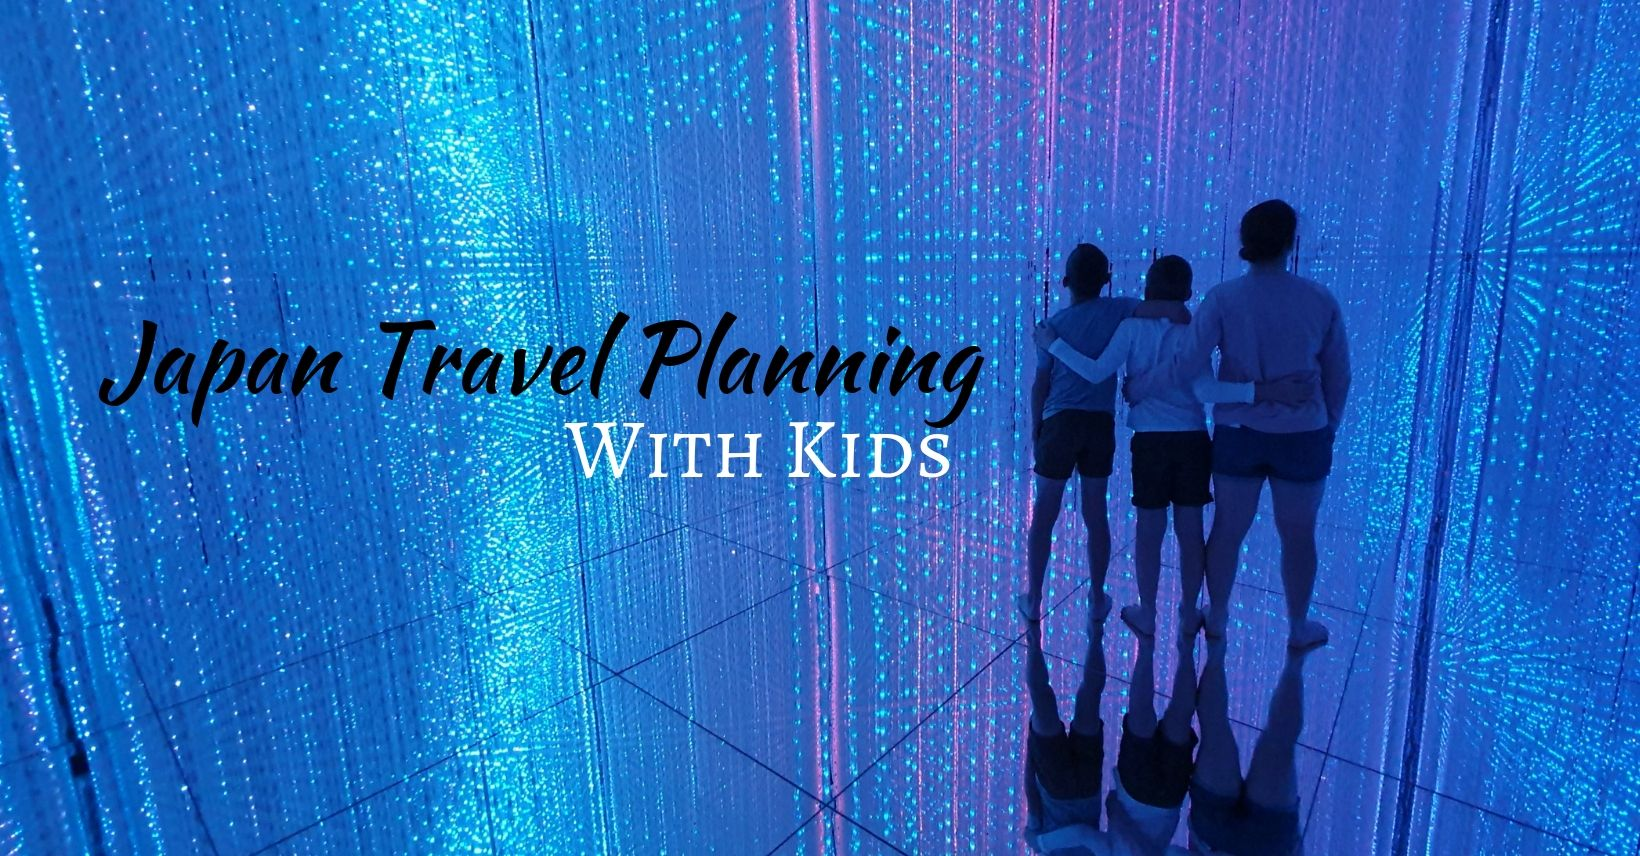 Japan Travel Planning With Kids Facebook Group